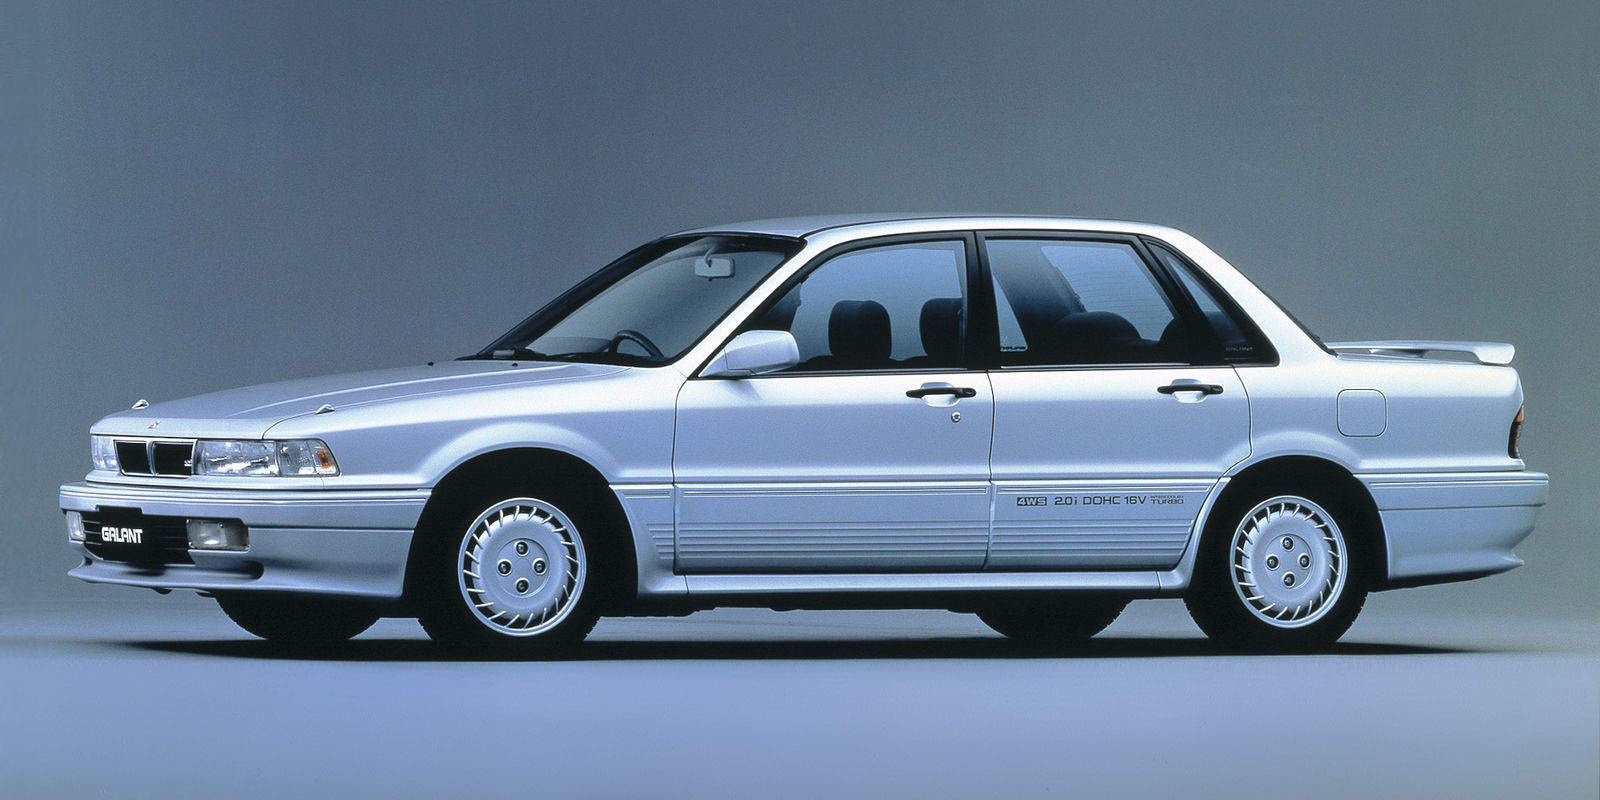 The Mitsubishi Galant VR-4 Was an Evo a Decade Before the Lancer Evolution